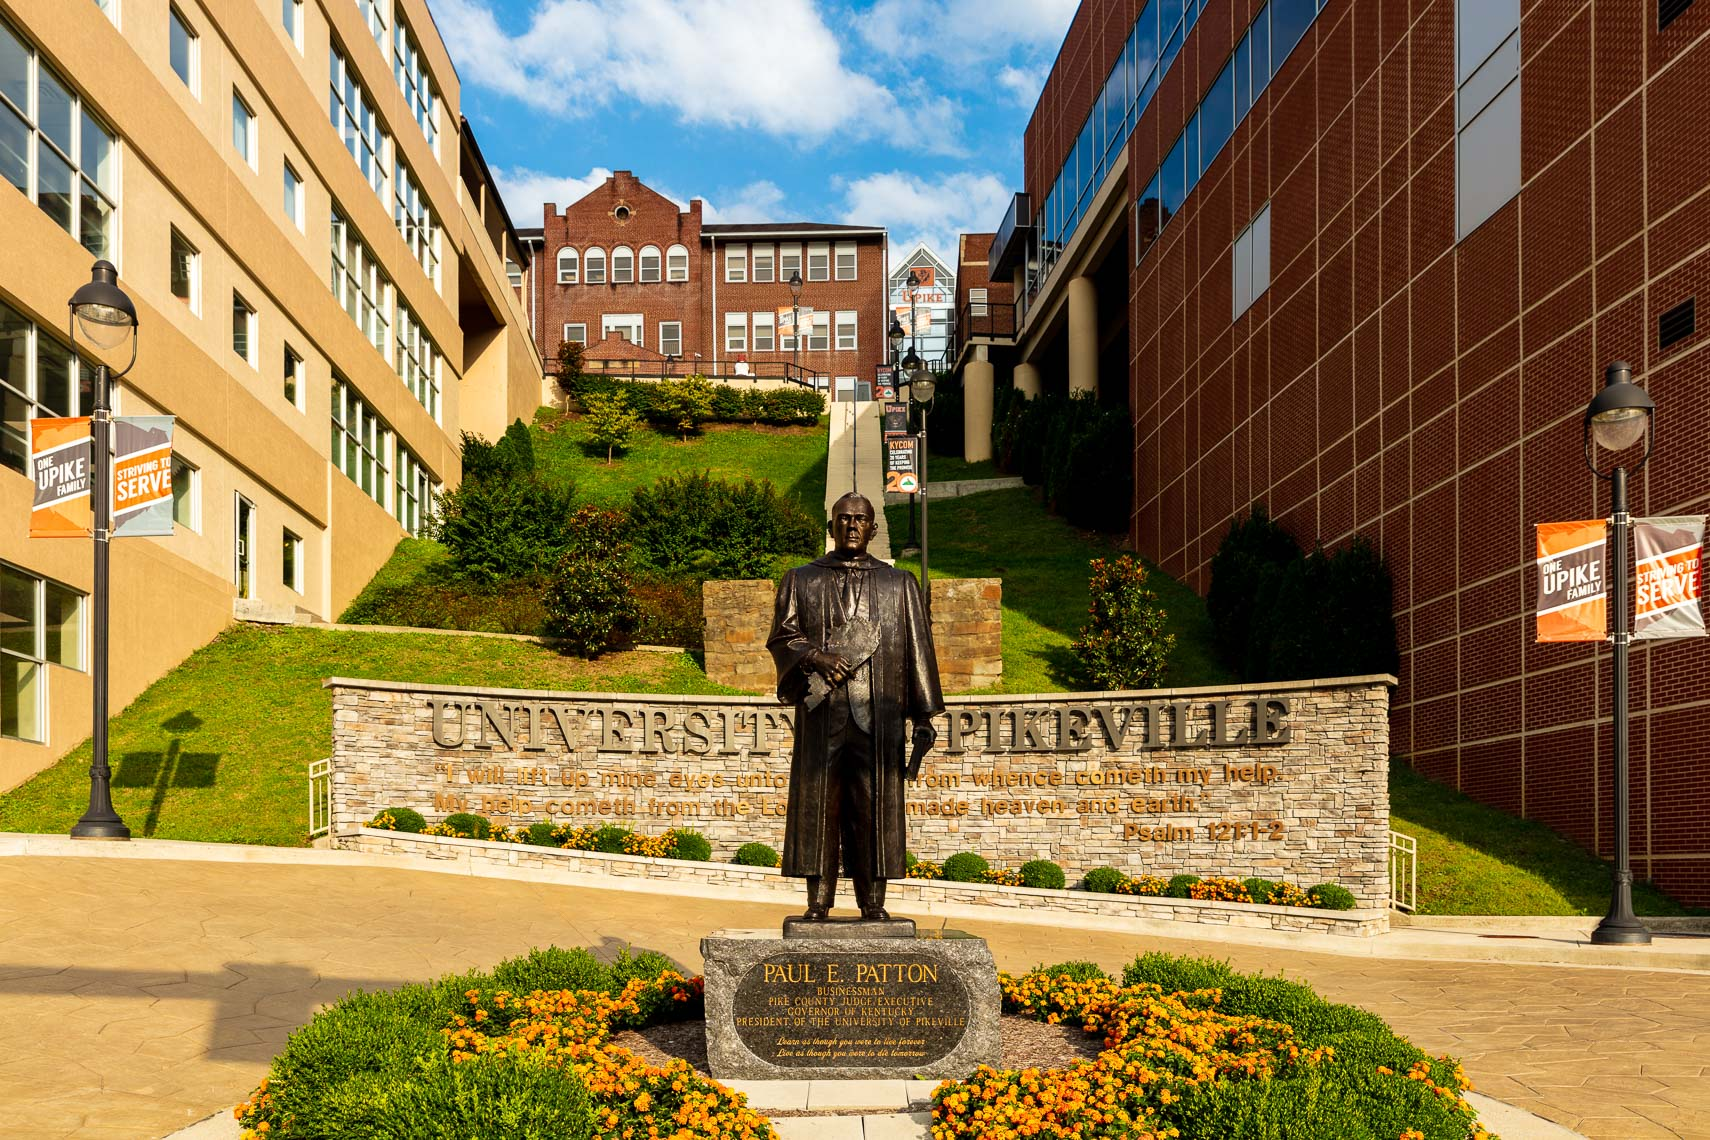 The Paul Patton Statue and stairway at Pikeville University